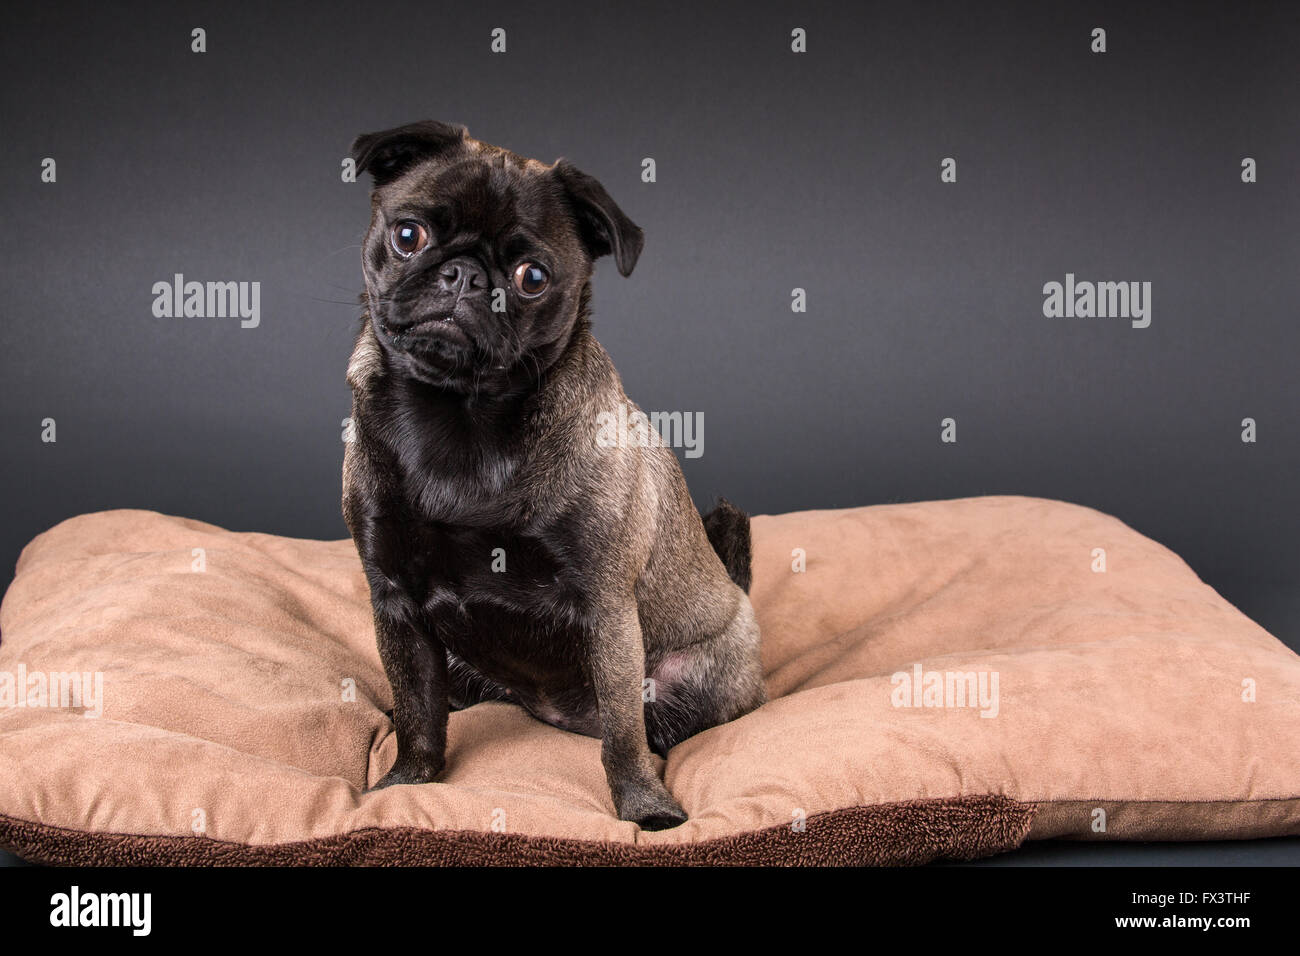 Olive, the Pug, sitting on a dog bed in Issaquah, Washington, USA - Stock Image